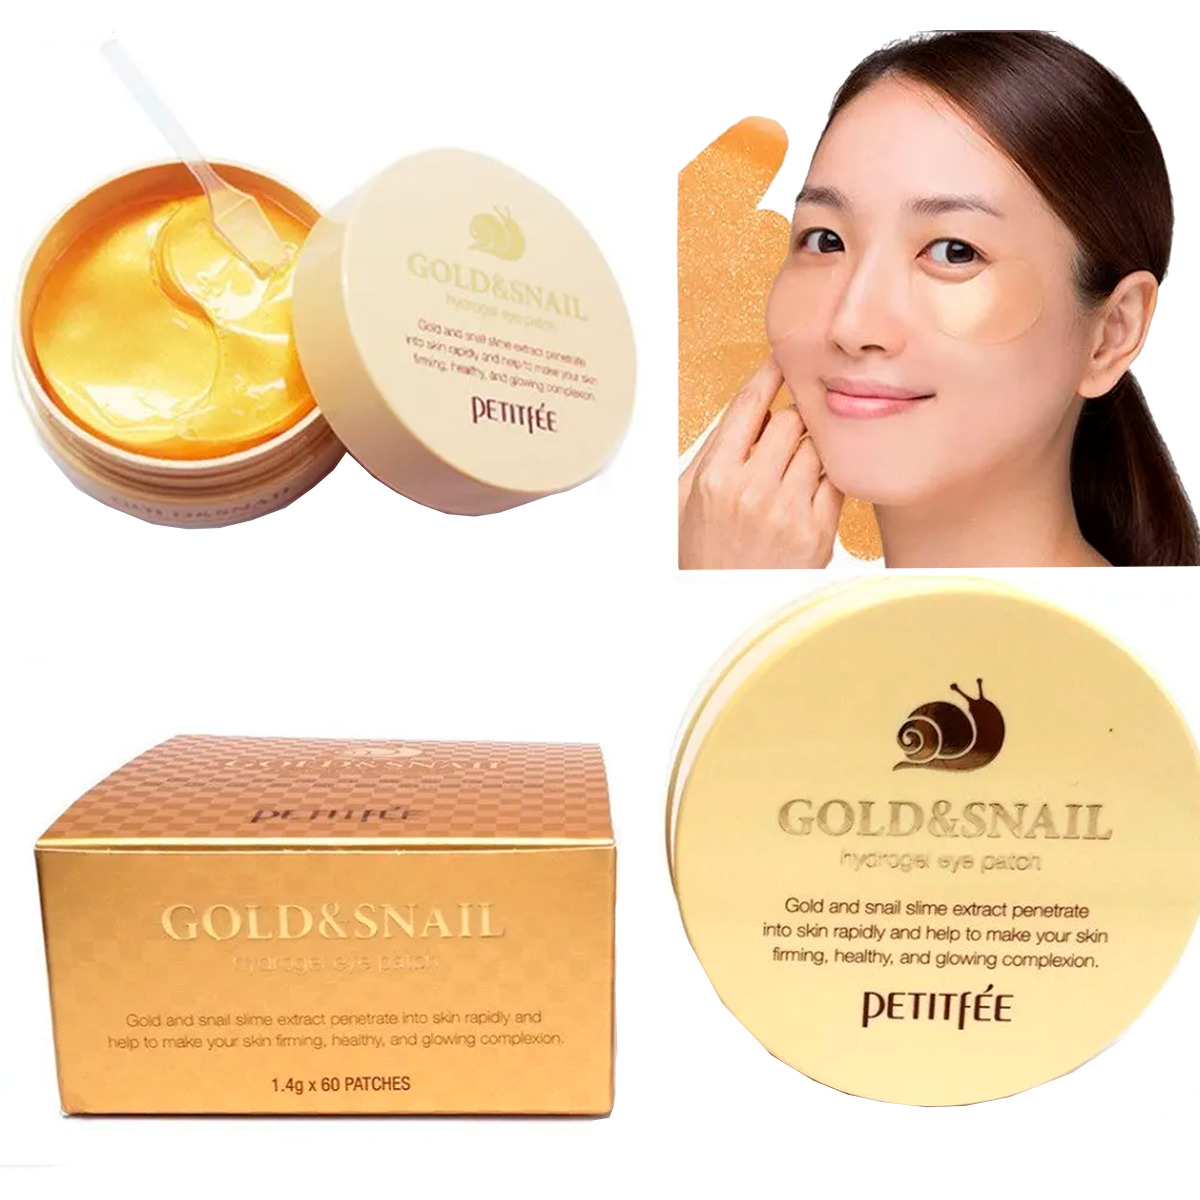 Gold & Snail Hydrogel Eye Patch 60 Petitfée